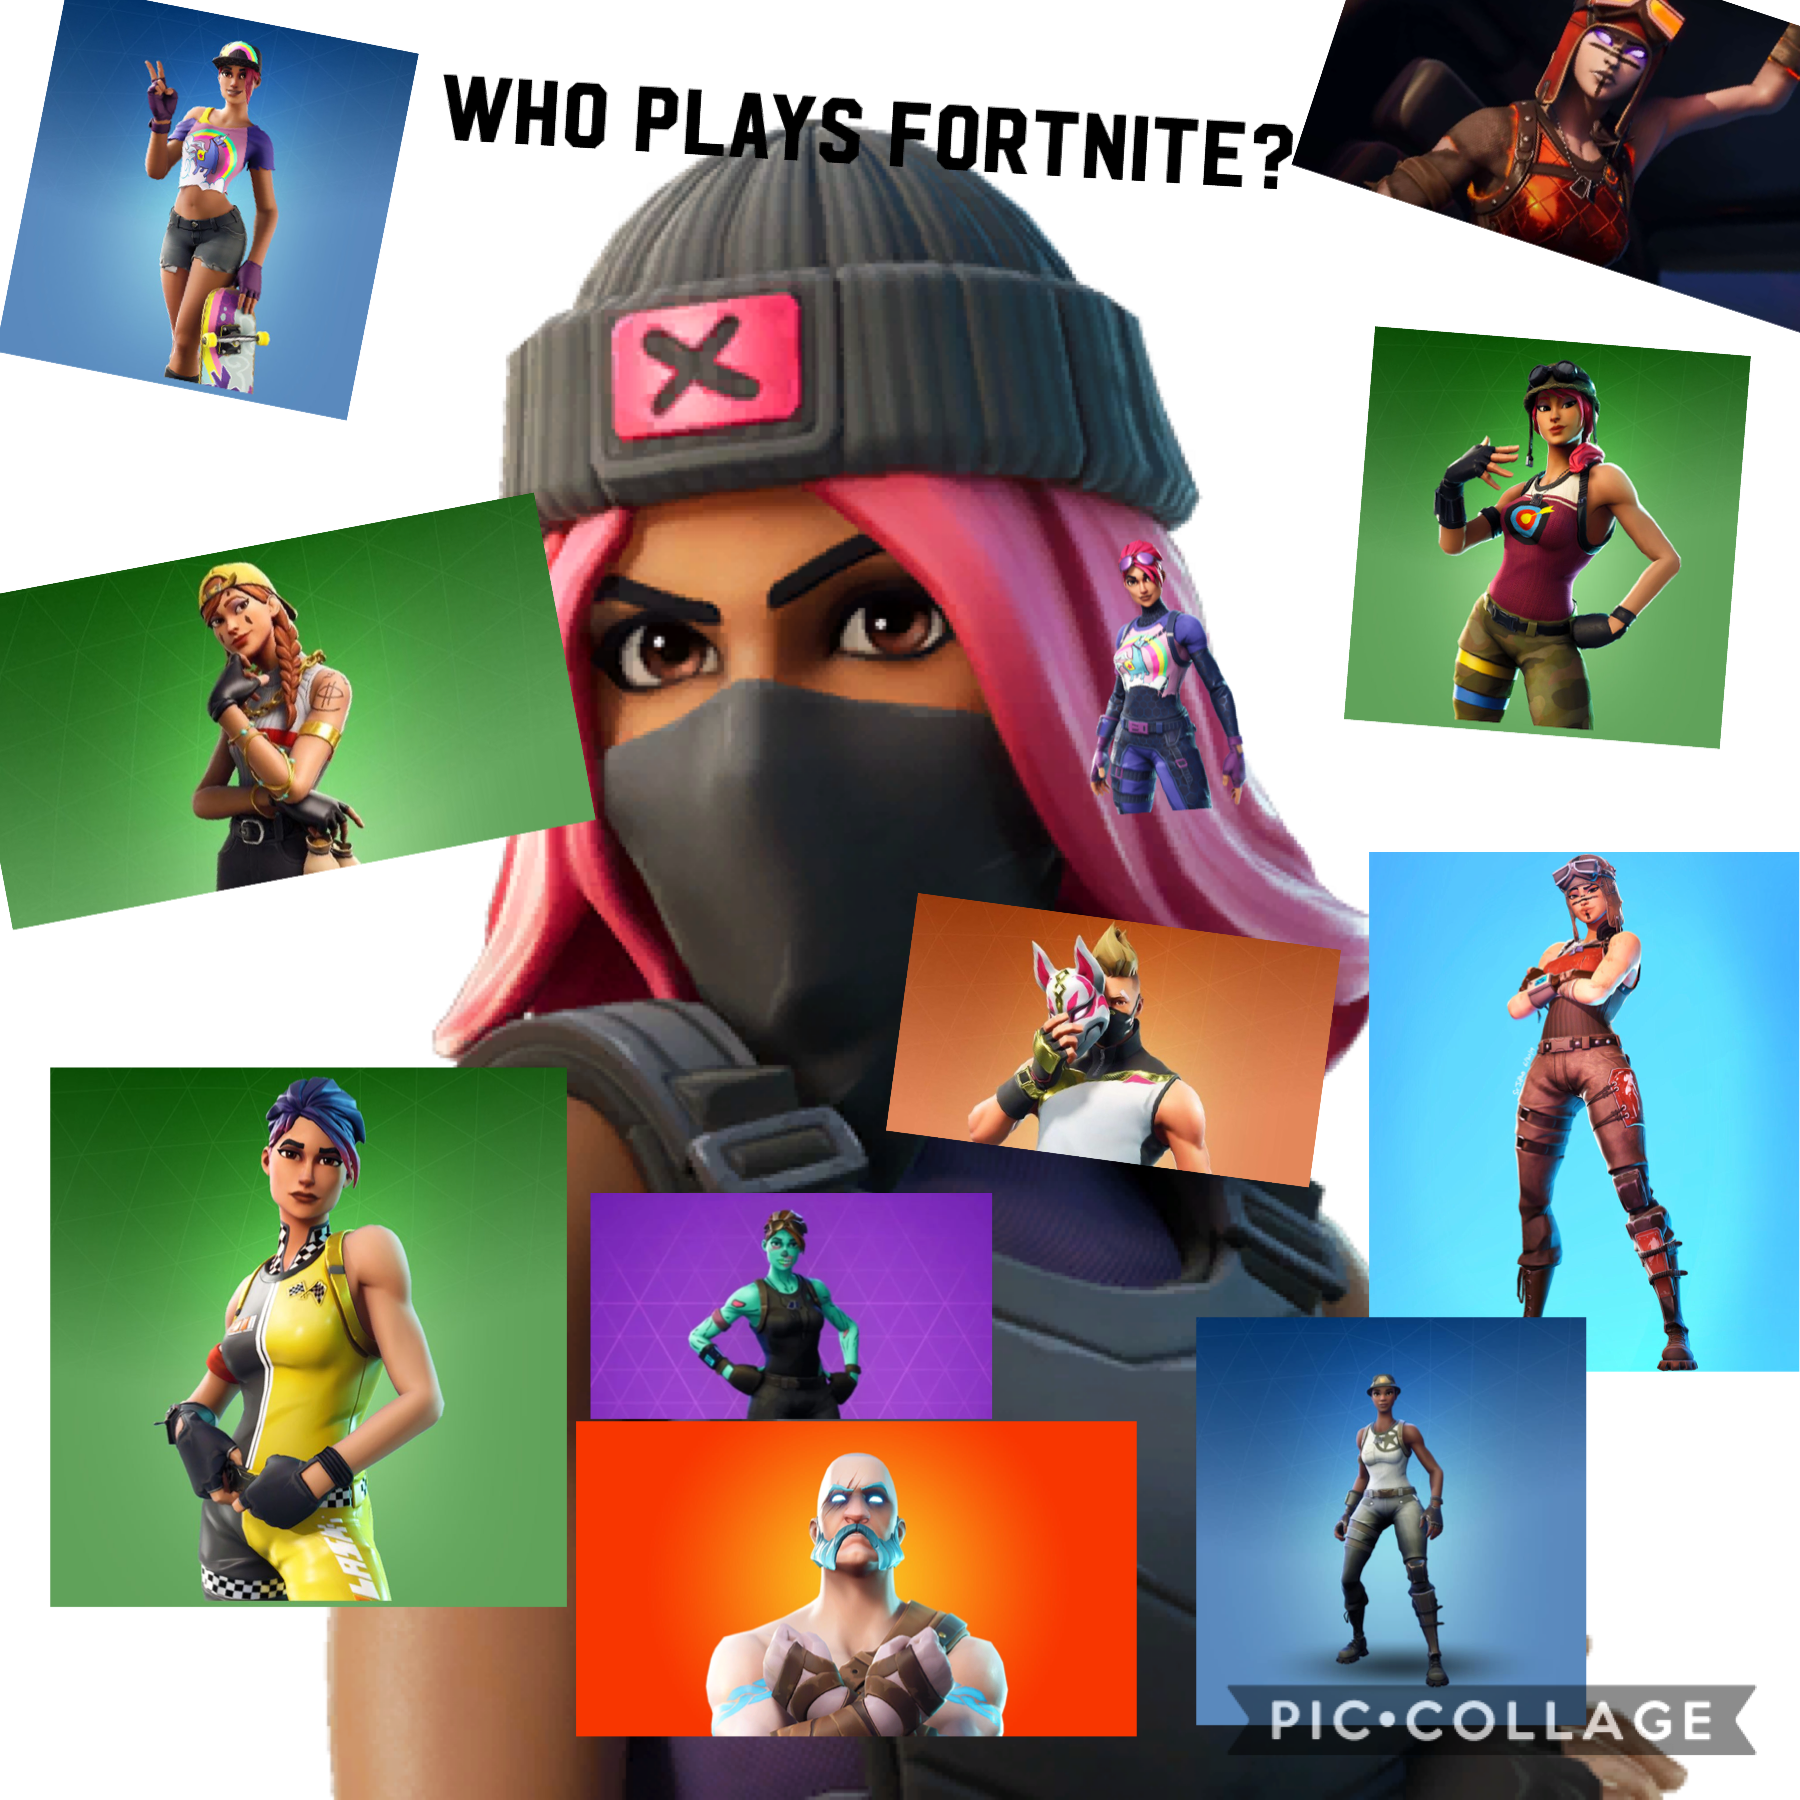 Who plays fortnite